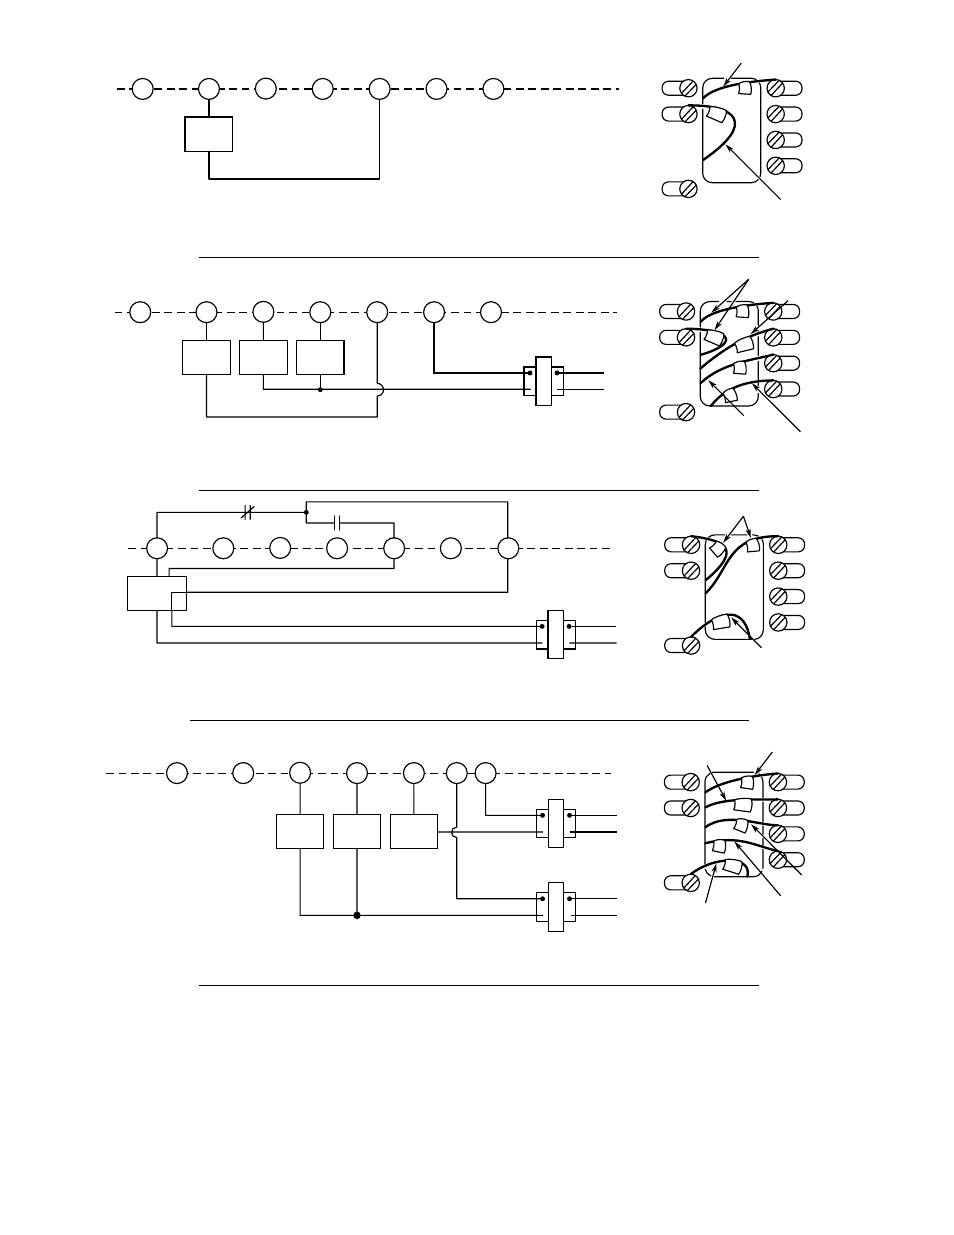 white rodgers 1311 wiring diagram